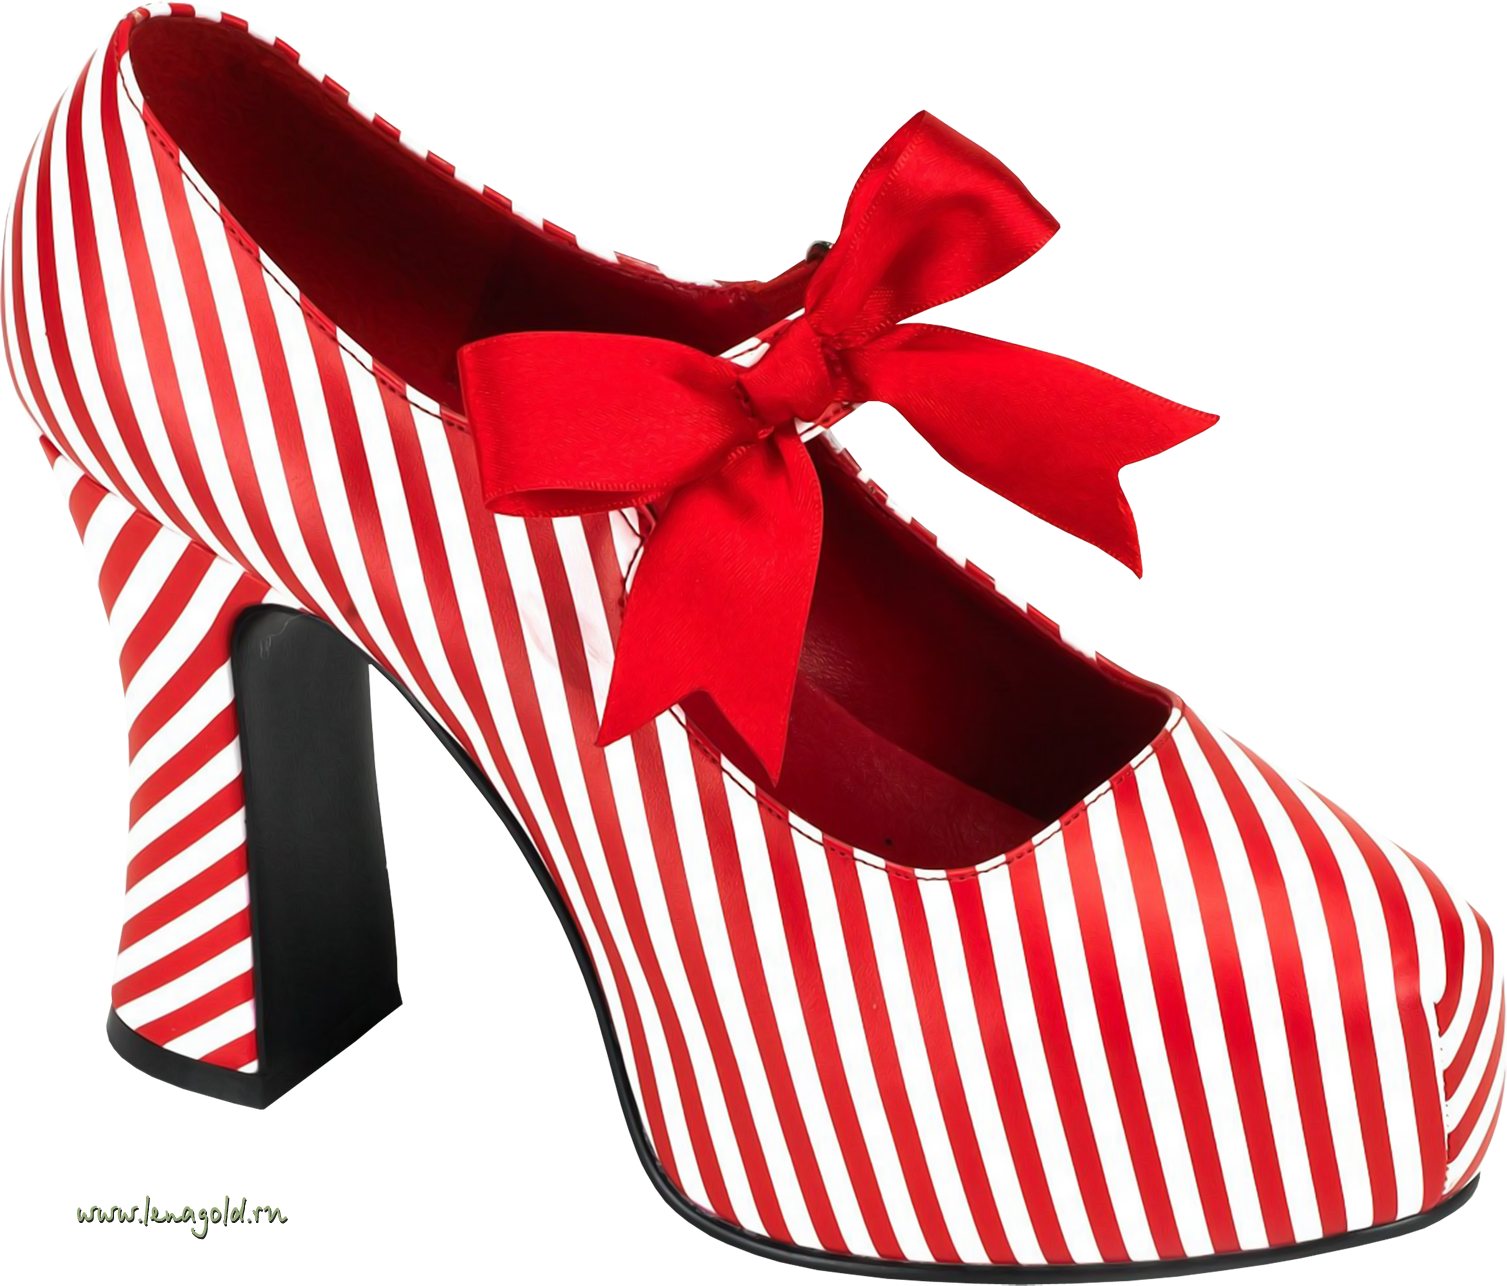 Clipart shoes chappal. Women png images free